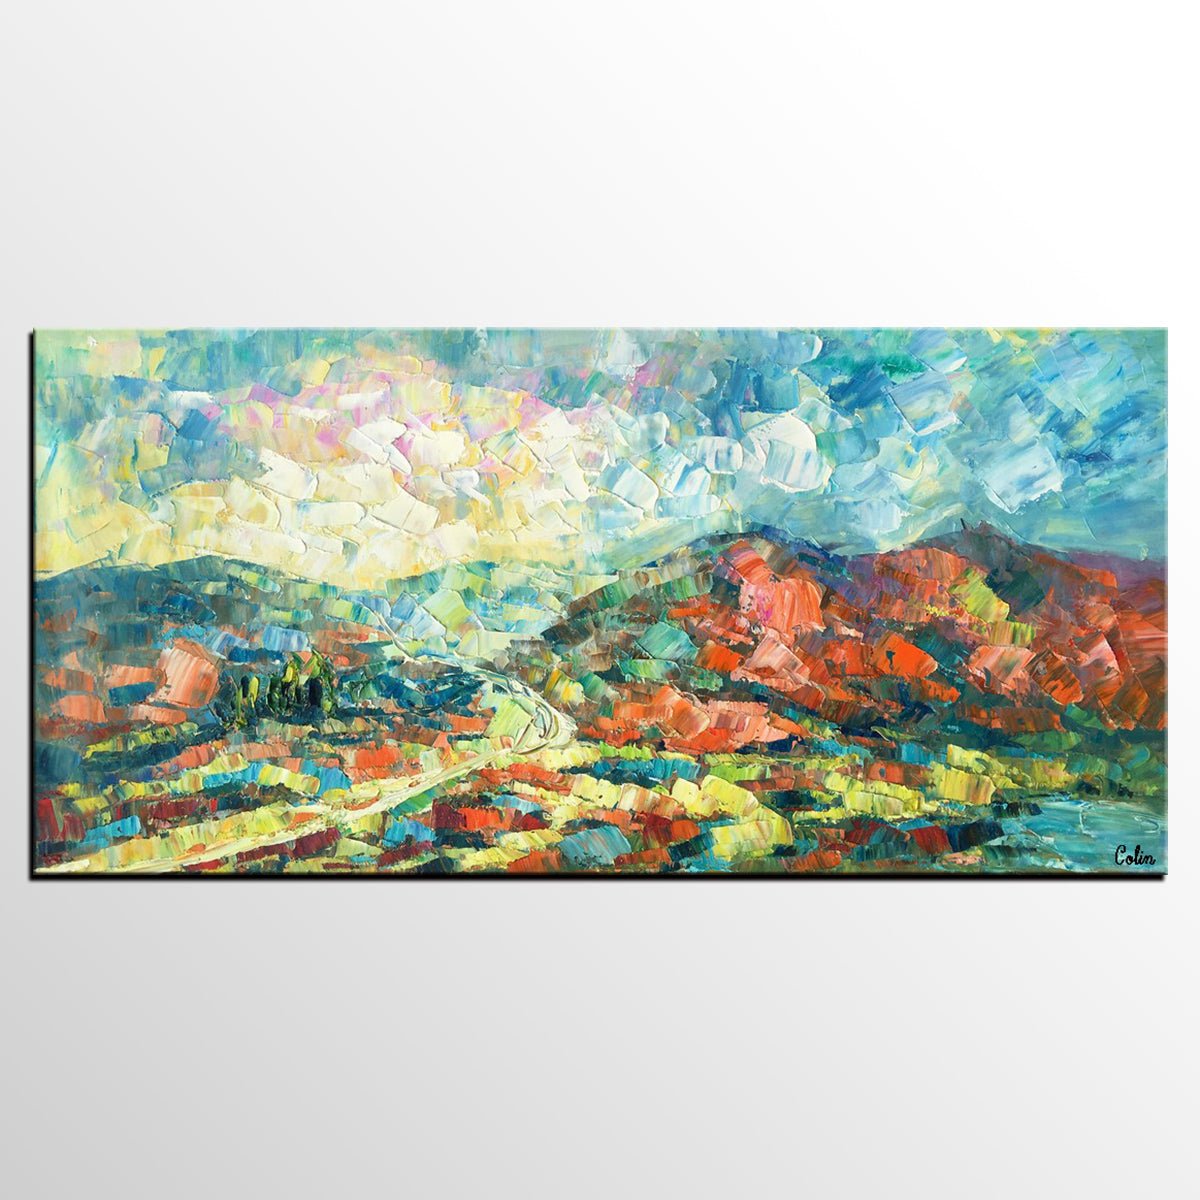 Original Wall Art, Mountain Landscape Painting, Large Wall Art, Original Artwork, Canvas Painting - artworkcanvas